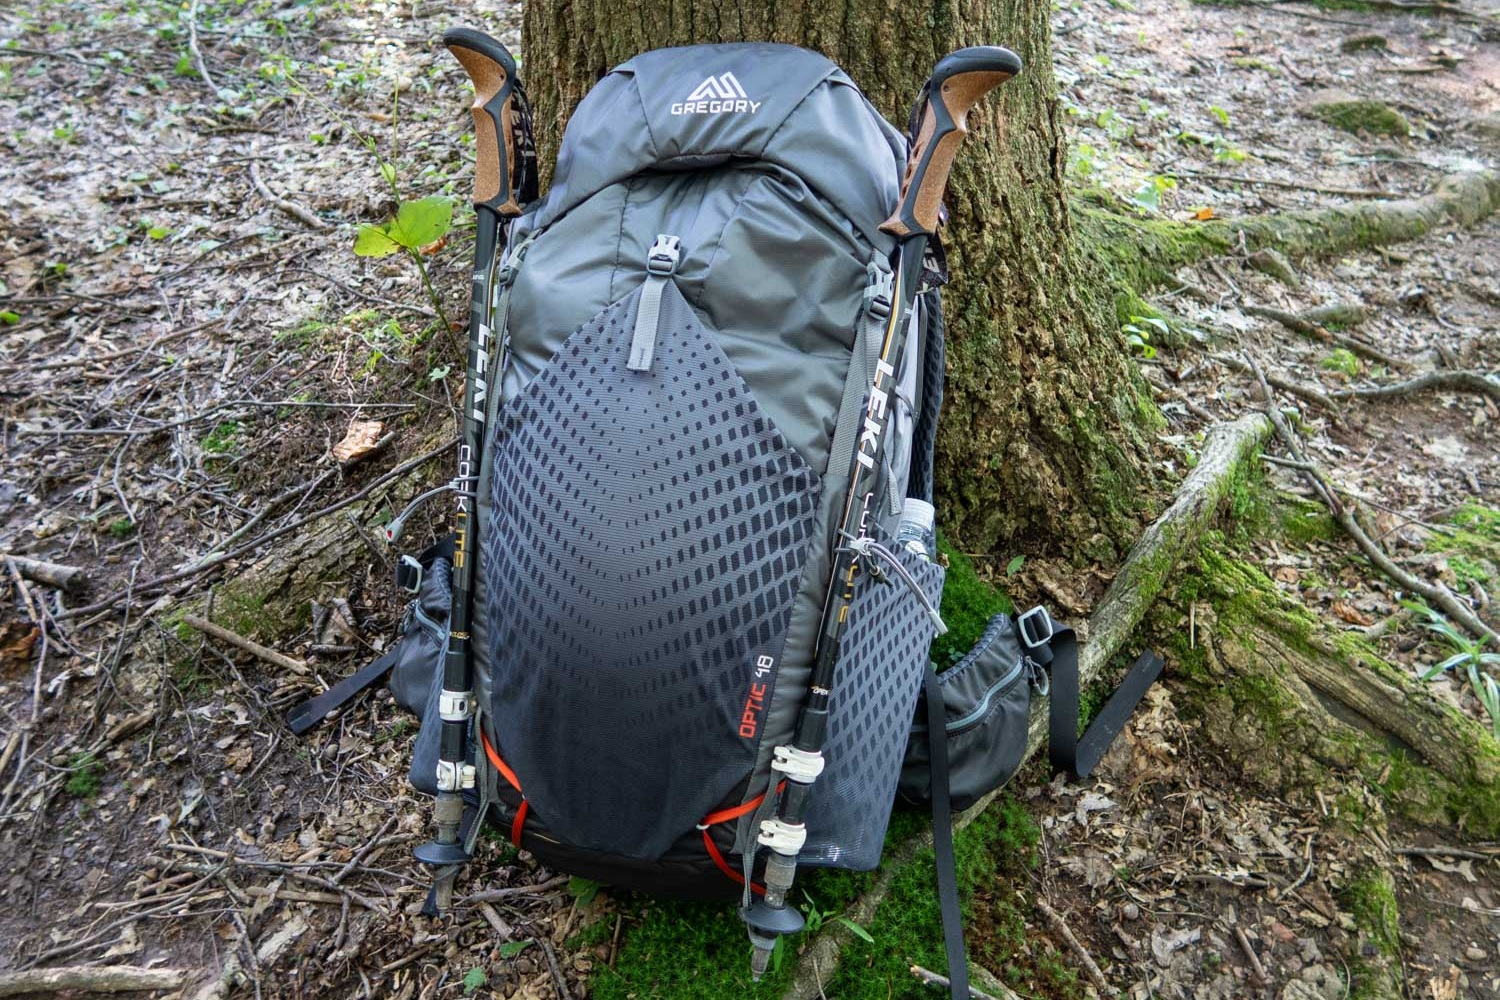 Dual trekking pole/tool attachment system